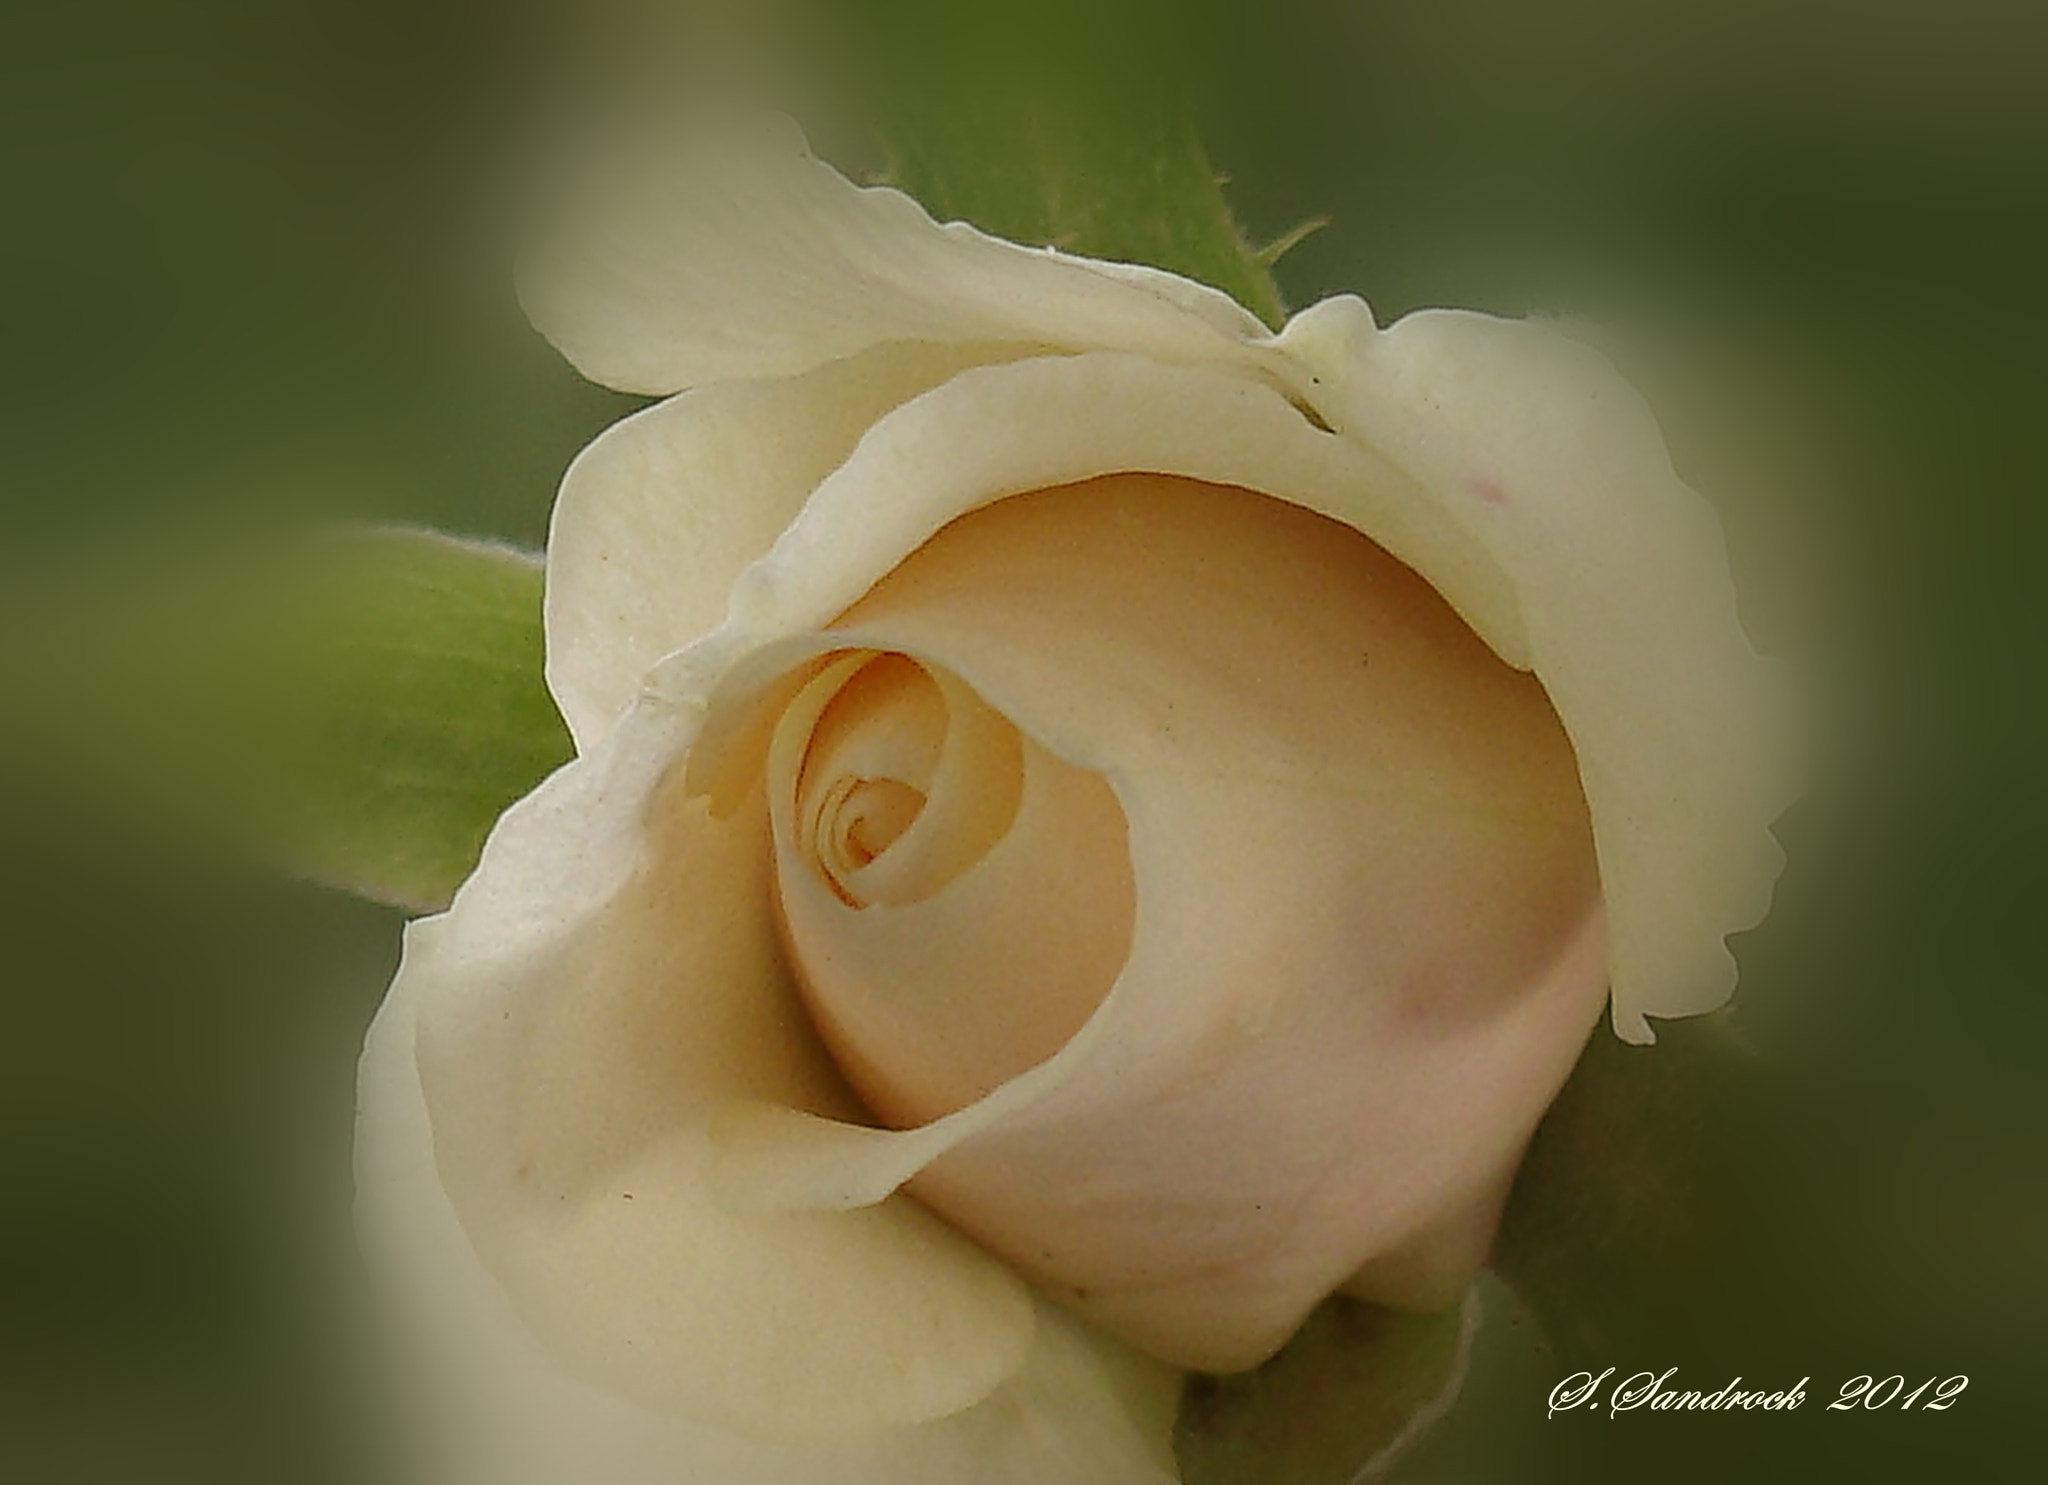 Photograph Creamy White. by Silvia Sandrock on 500px